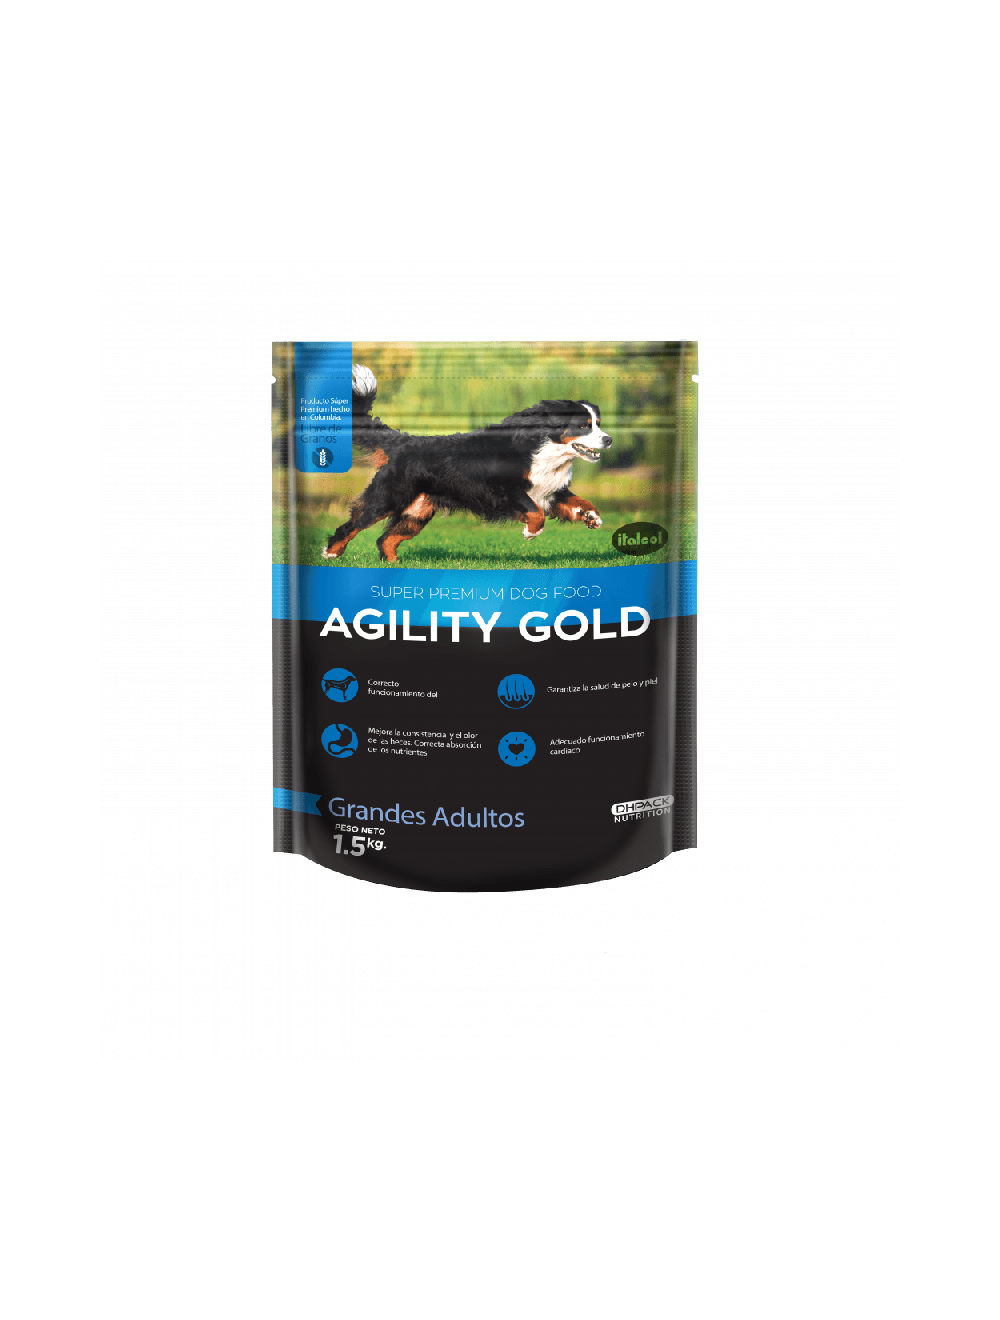 Agility Gold Grandes Adultos Combo 1.5Kg x 10 Und